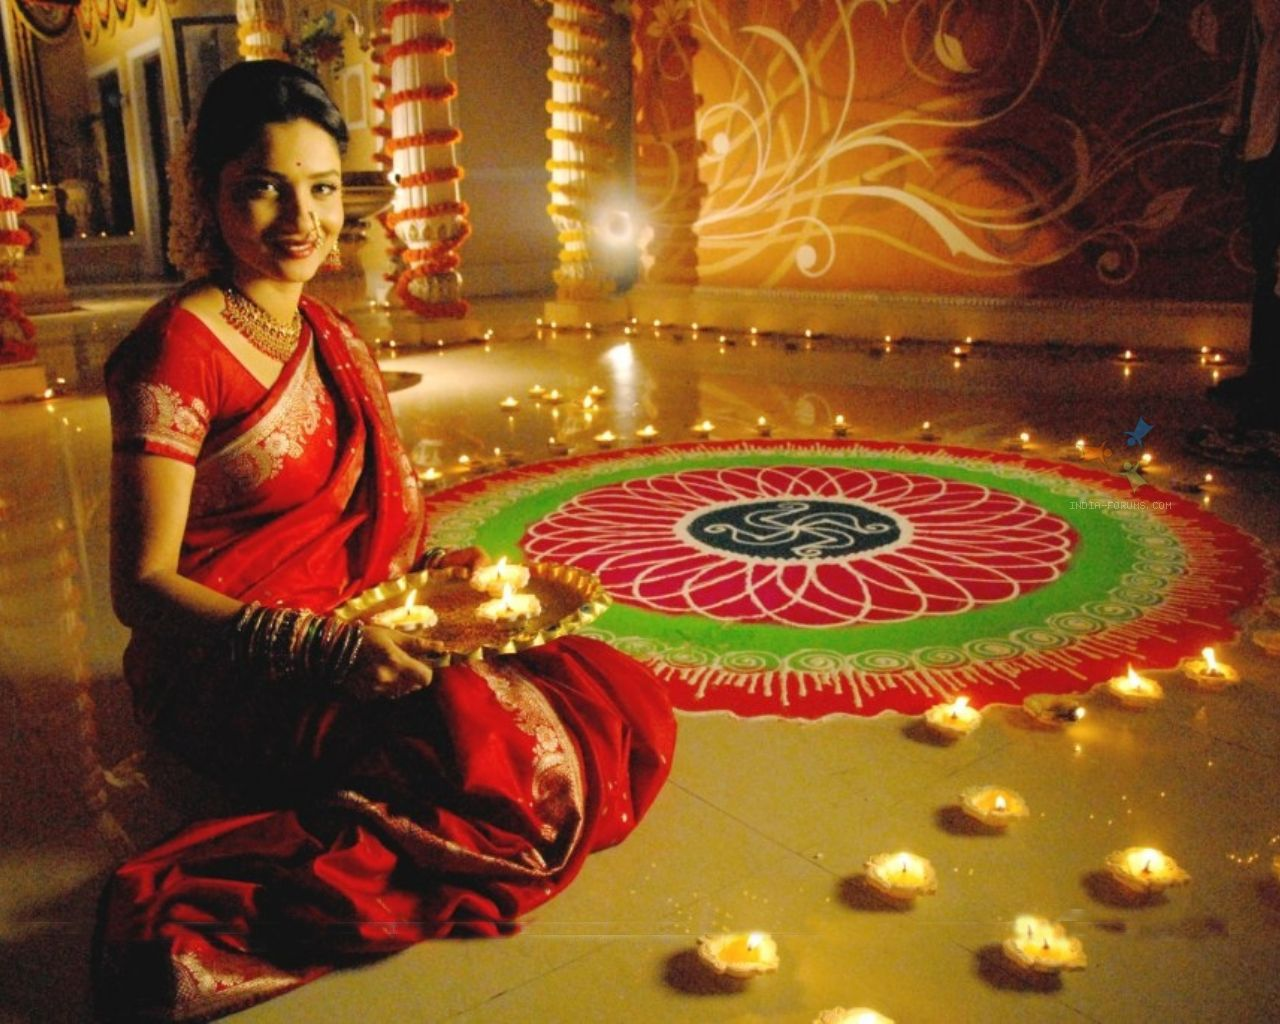 Wallpaper download diwali - Diwali Images With Pictures Download Diwali Images With Pictures And Quotes Diwali Images With